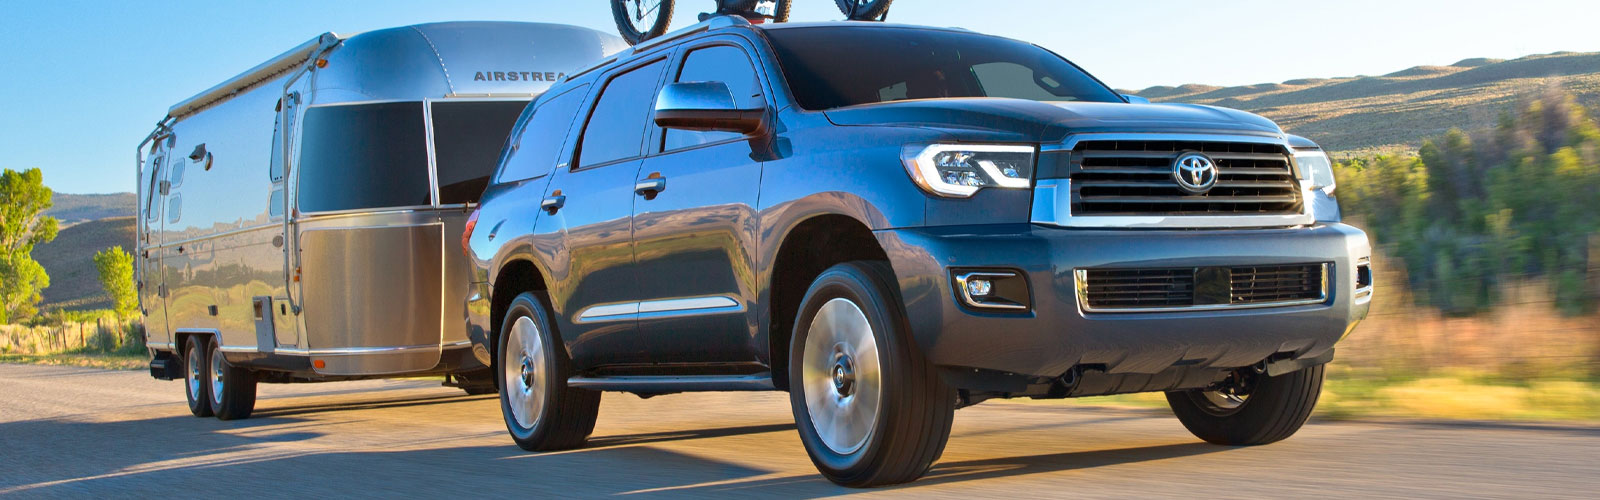 2020 Toyota Sequoia SUV Models For Sale In Grenada, Mississippi